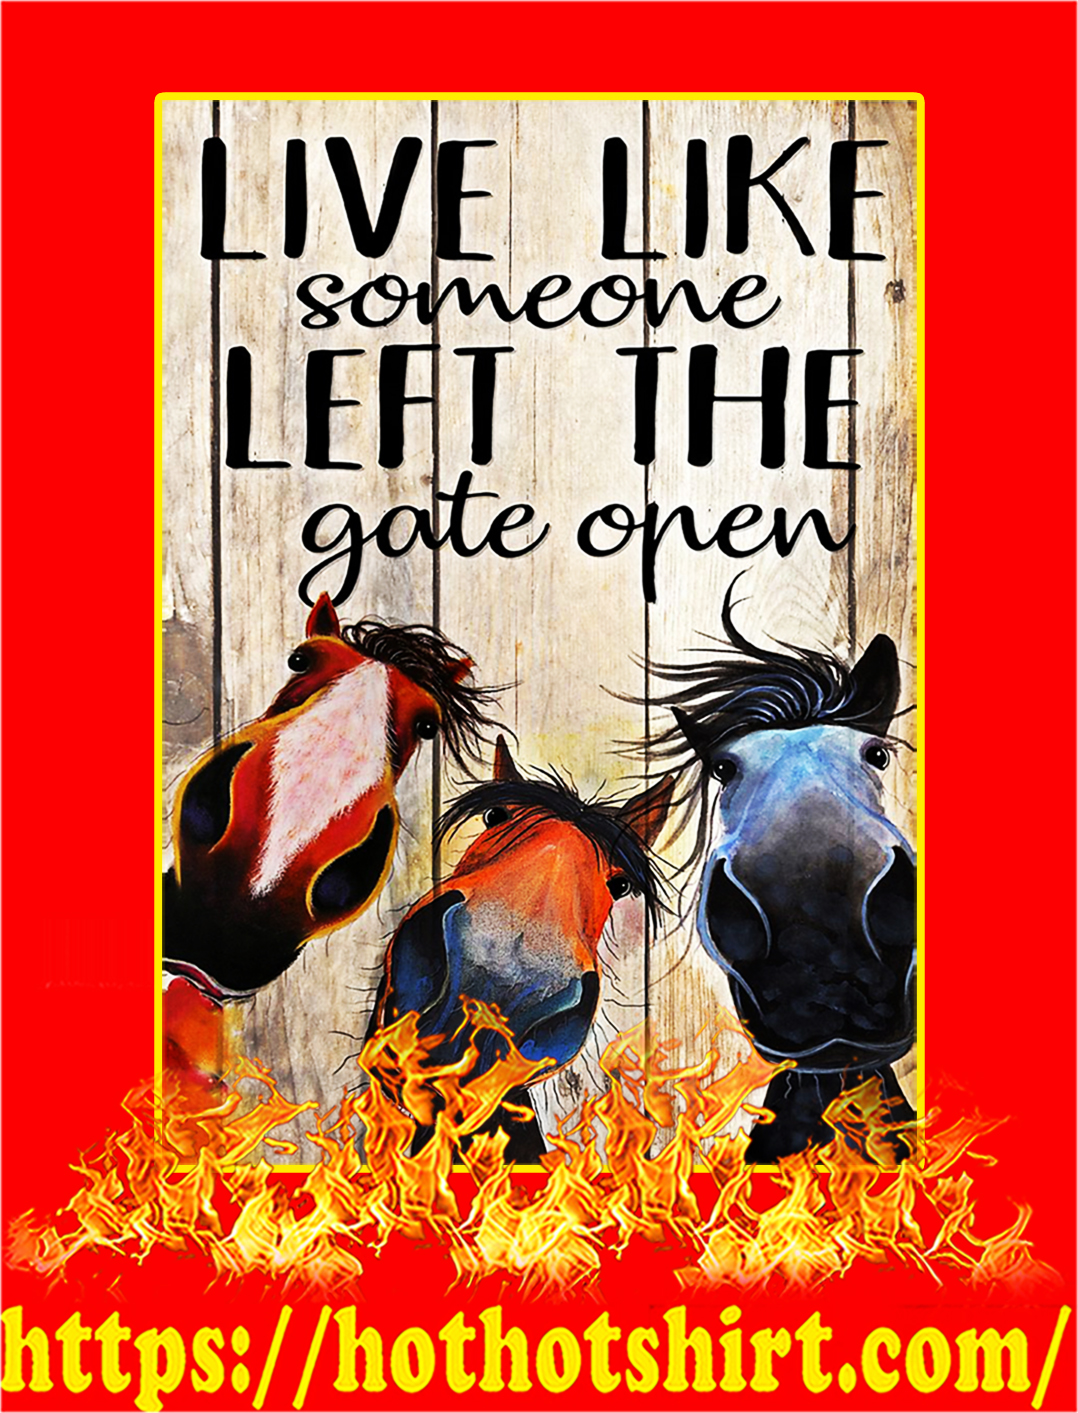 Horse Live Like Someone Left The Gate Open Poster - A1